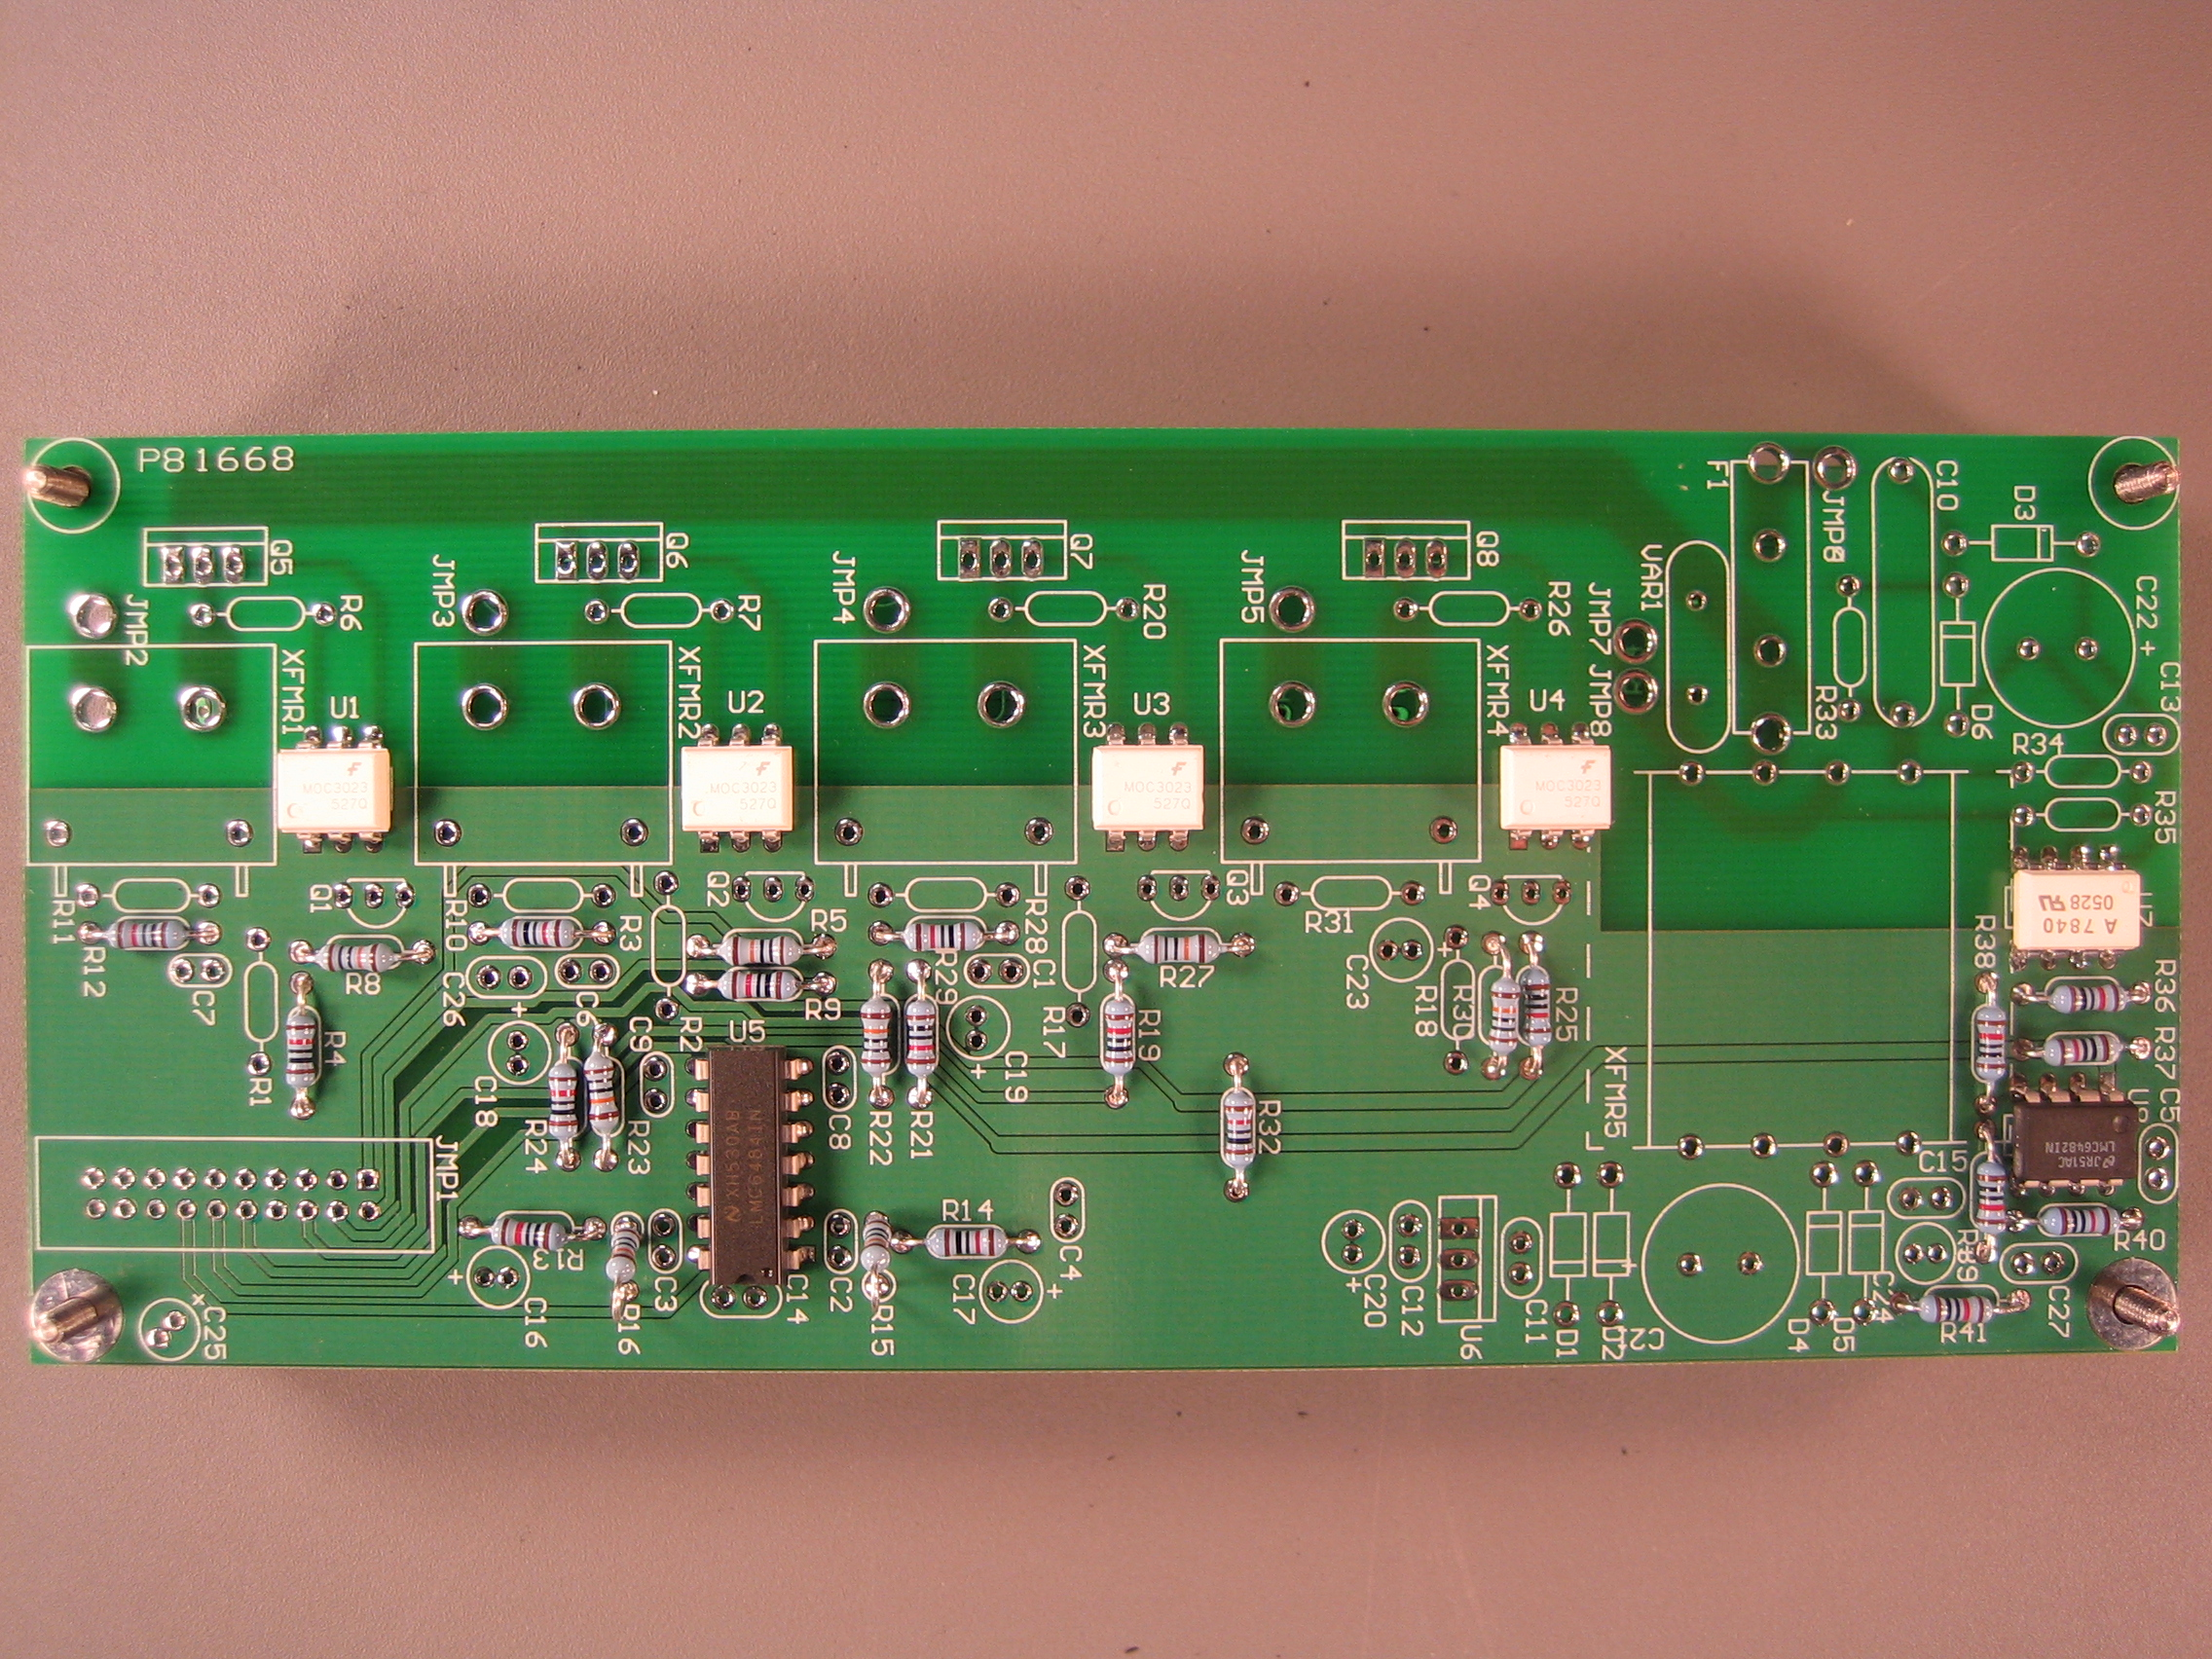 Step By Guide To Building A Plug High Voltage Board Printed Circuit Is Used In Electronics I Use It As Eight 100 Kohm Resistors R8 R9 R15 R16 R22 R23 R27 R30 Warning Two Resistor Labels R5 And Are Switched On The